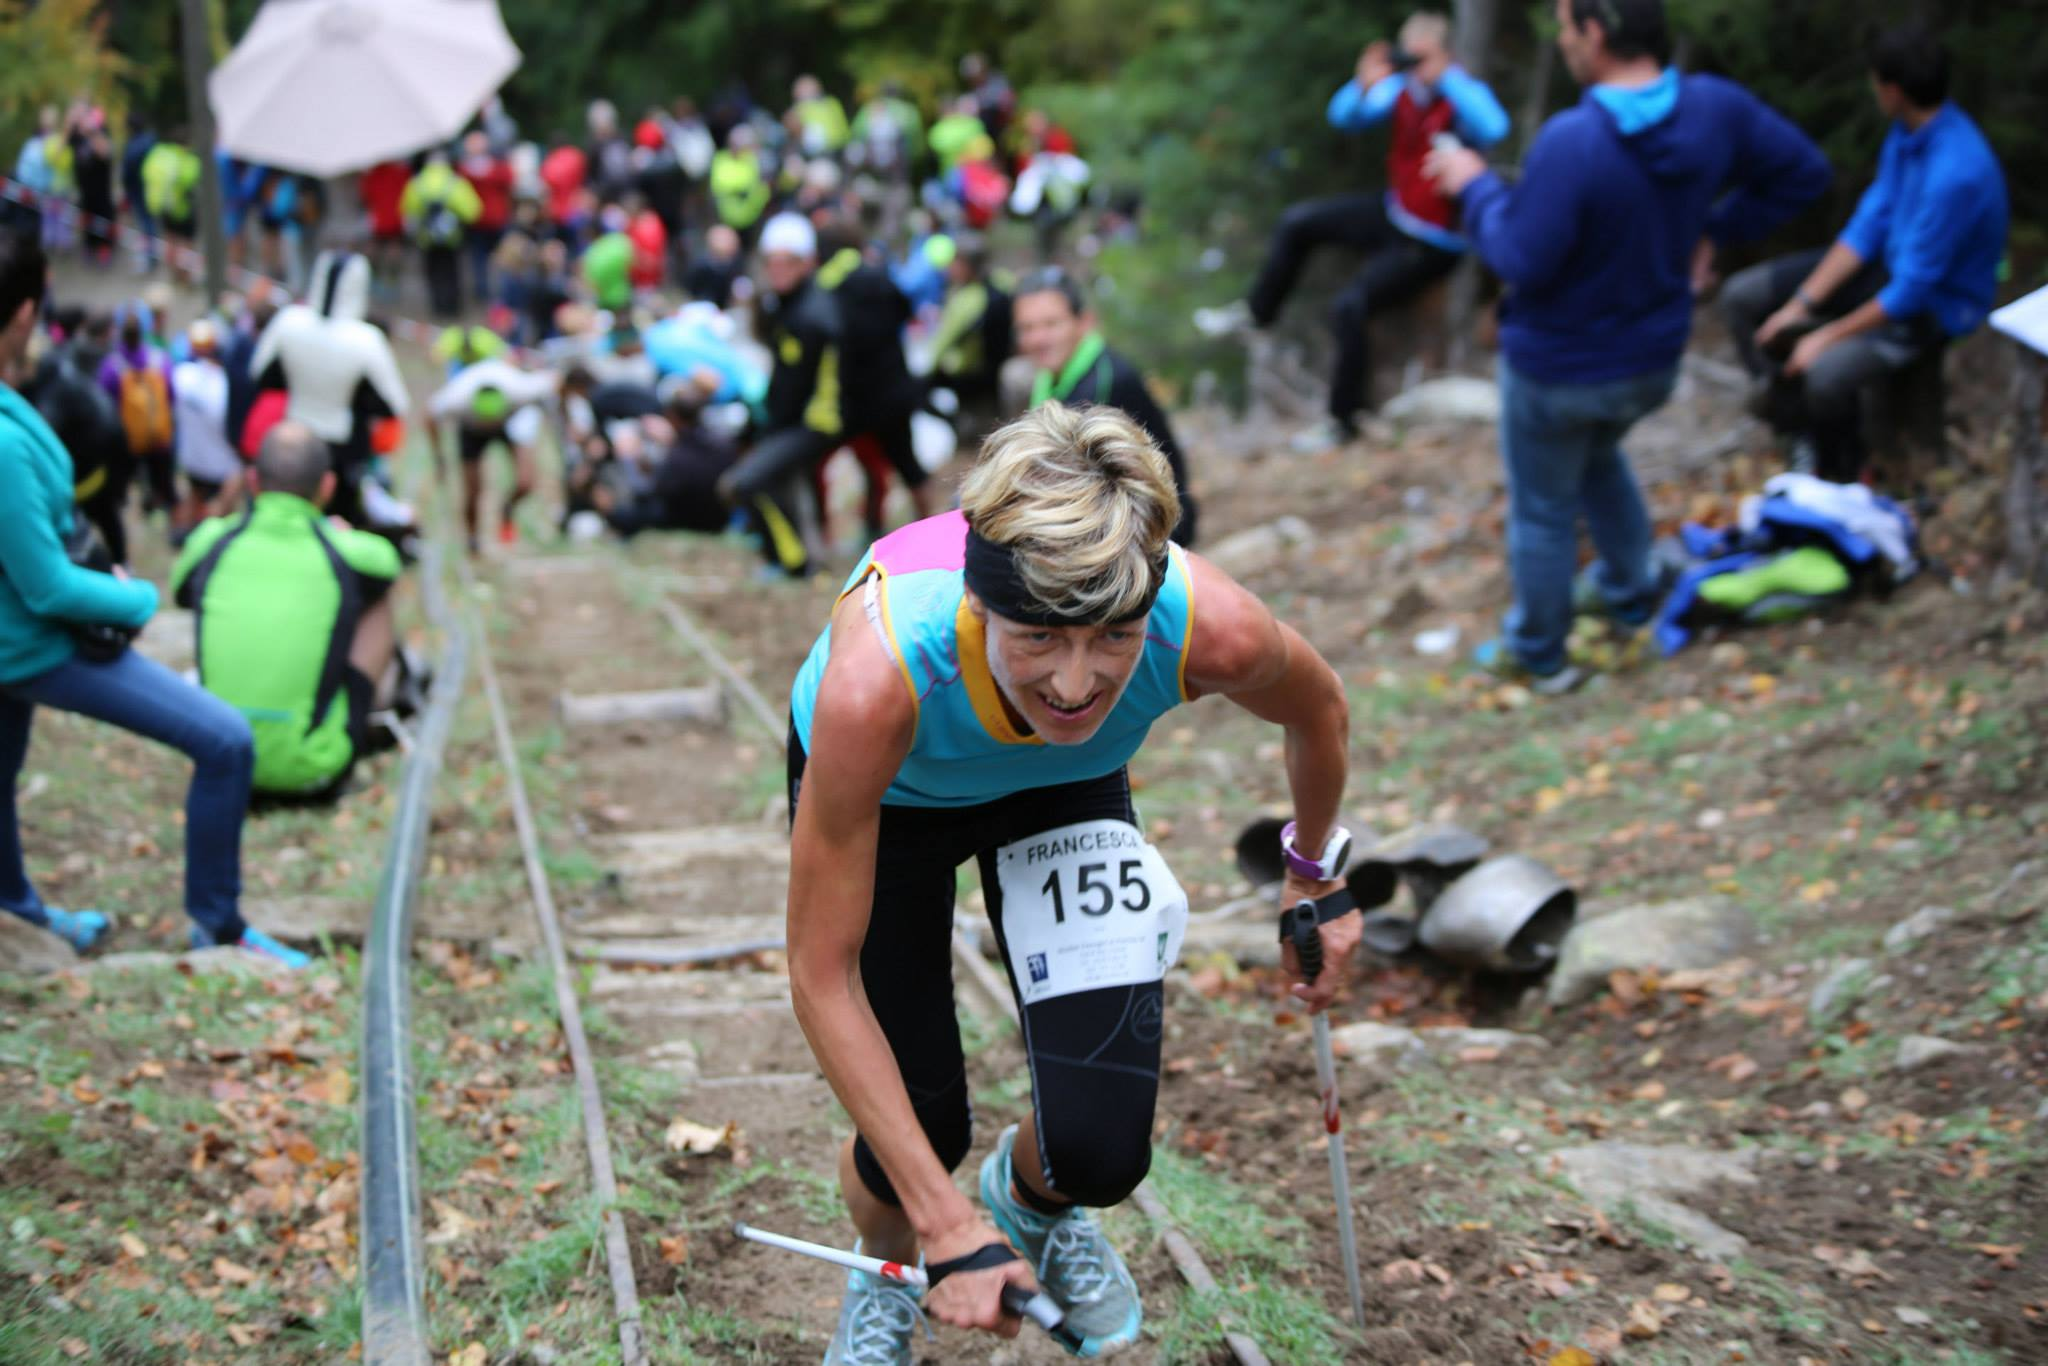 10679750 10152816641149176 5505101706211210407 o - PHOTOS DES ATHLETES FEMININES SUR LE KM VERTICAL DE FULLY (SUISSE) / 25-10-14